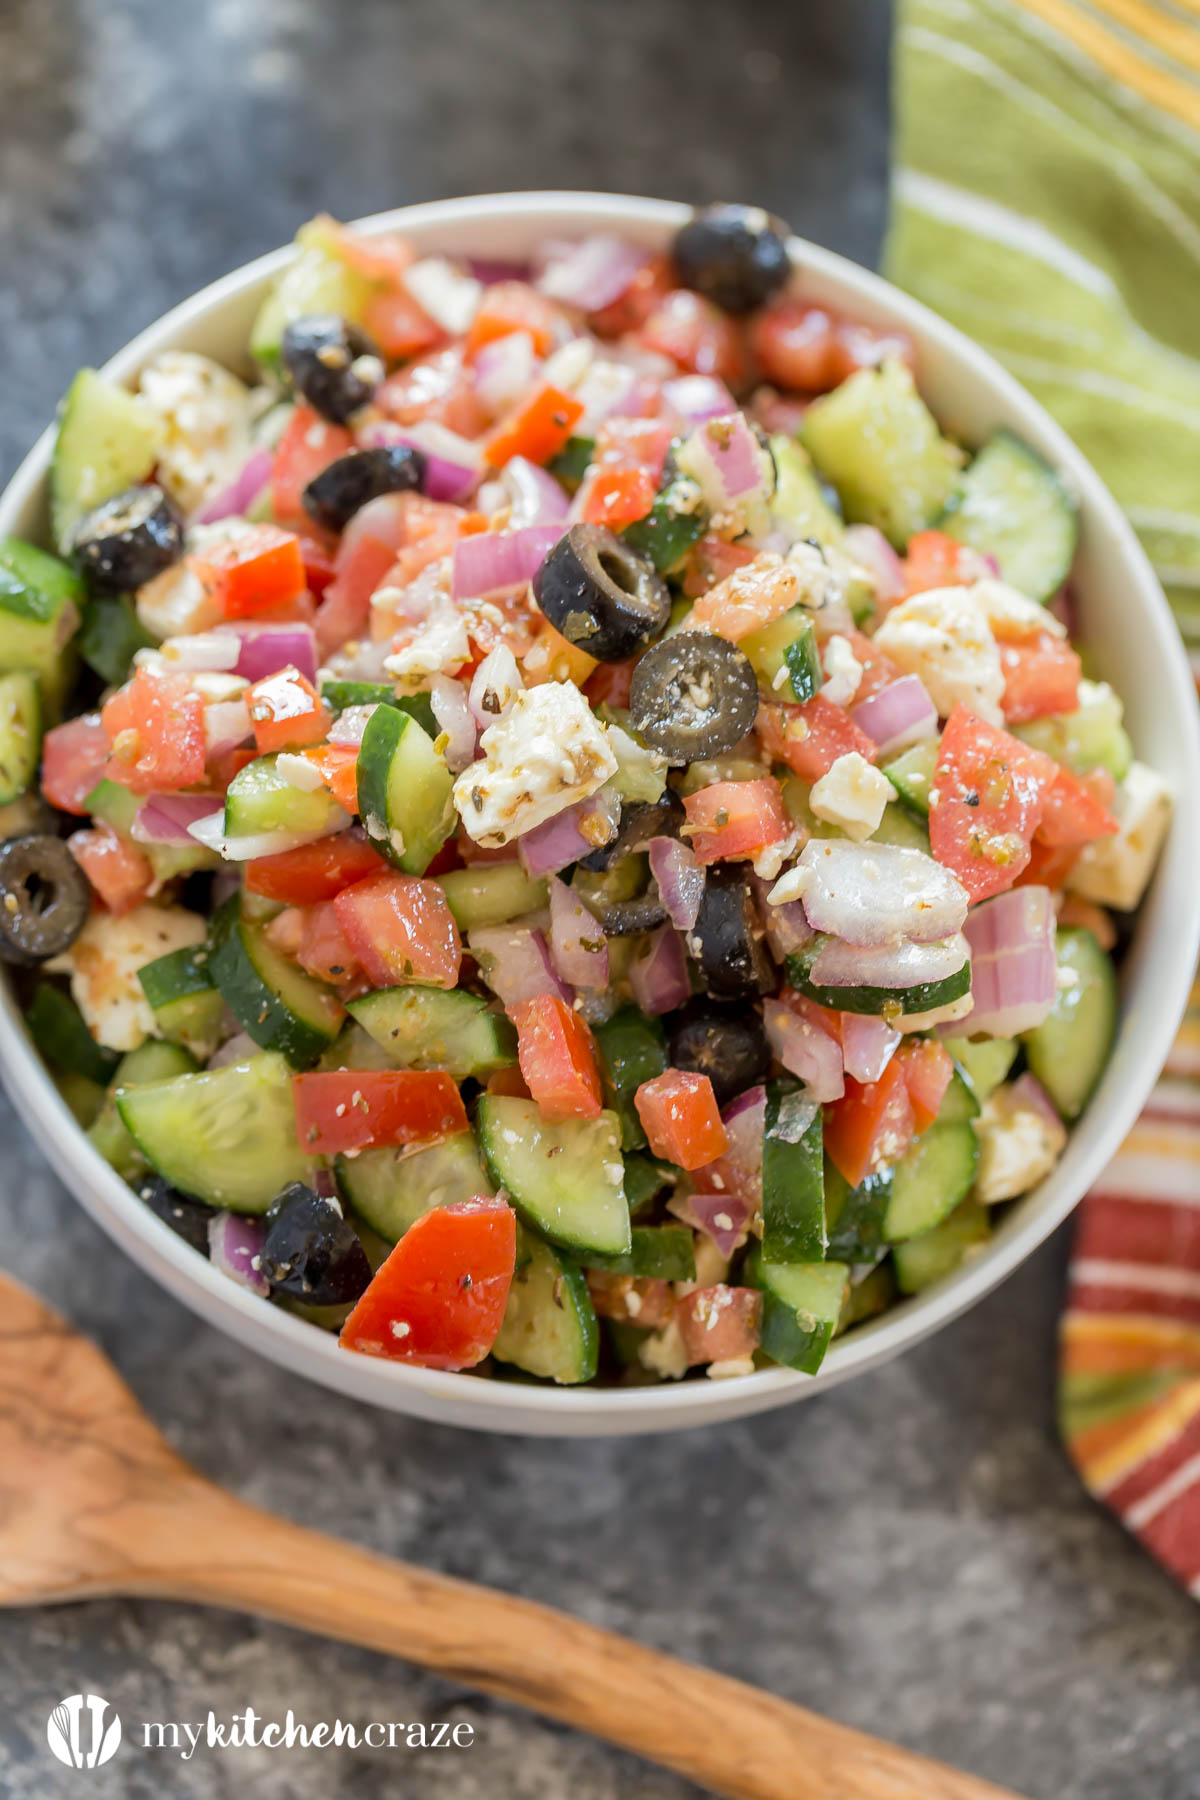 Greek Salad is perfect with any main dish. Throw it together and have a delicious side within minutes!